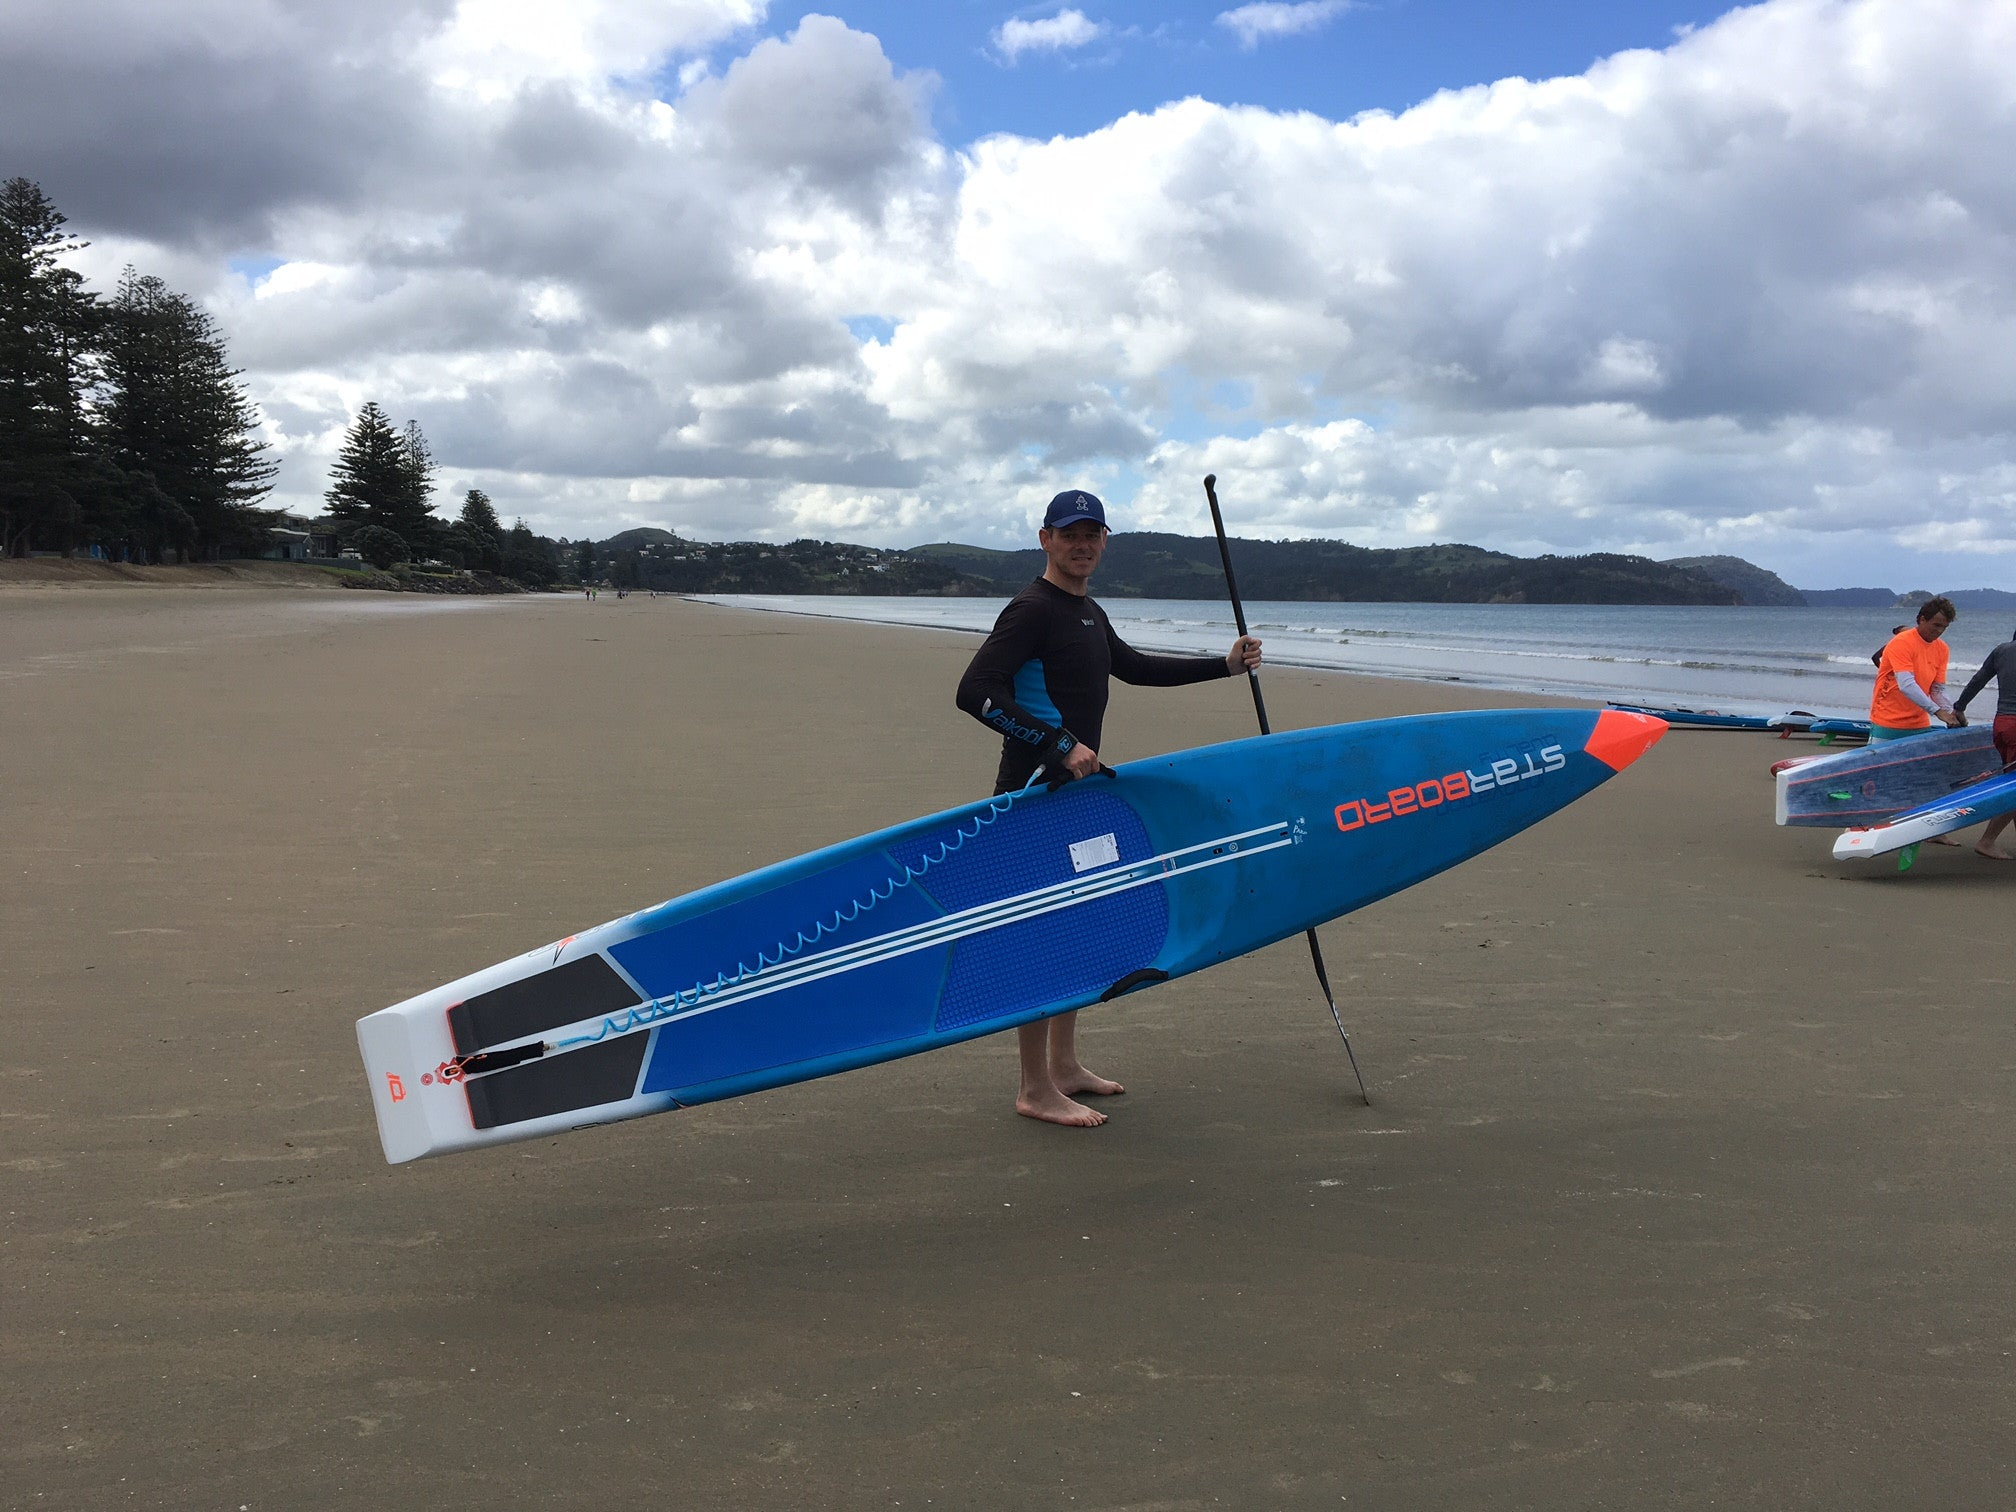 Testing NEW 2017 Starboard Race Boards